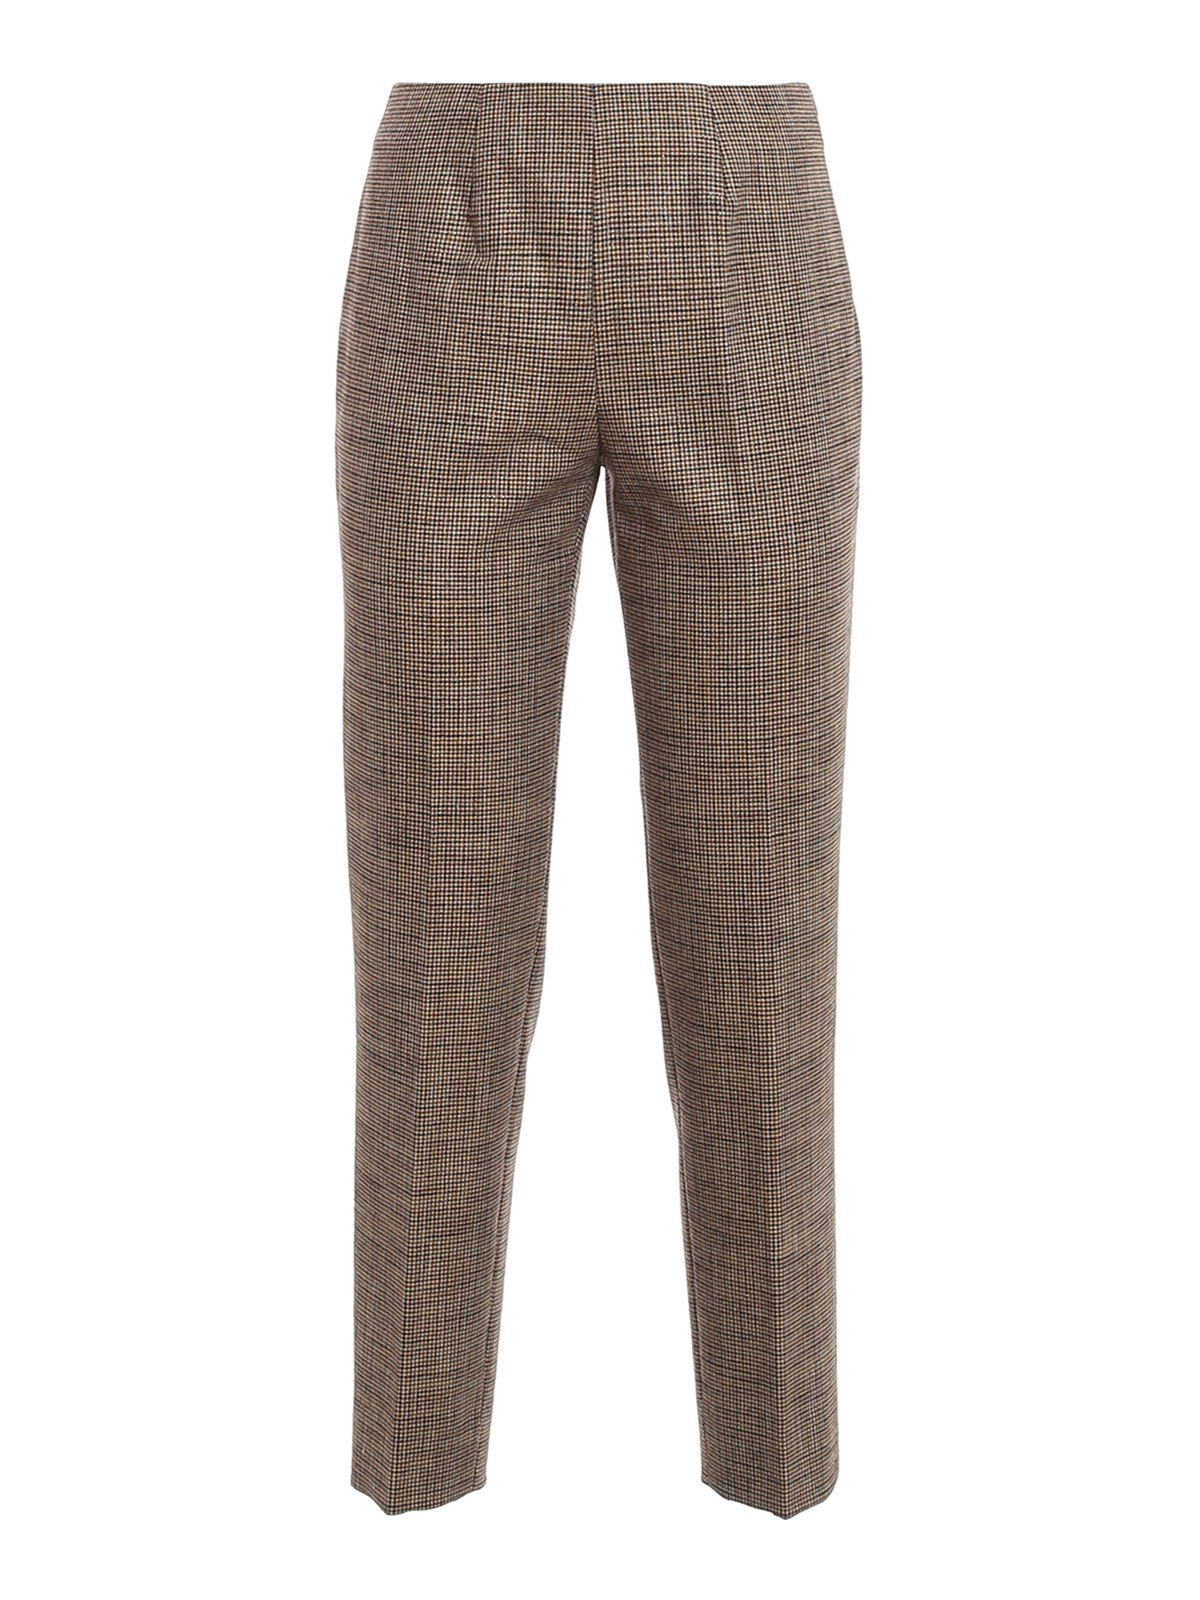 Piazza Sempione Silks HOUNDSTOOTH TROUSERS